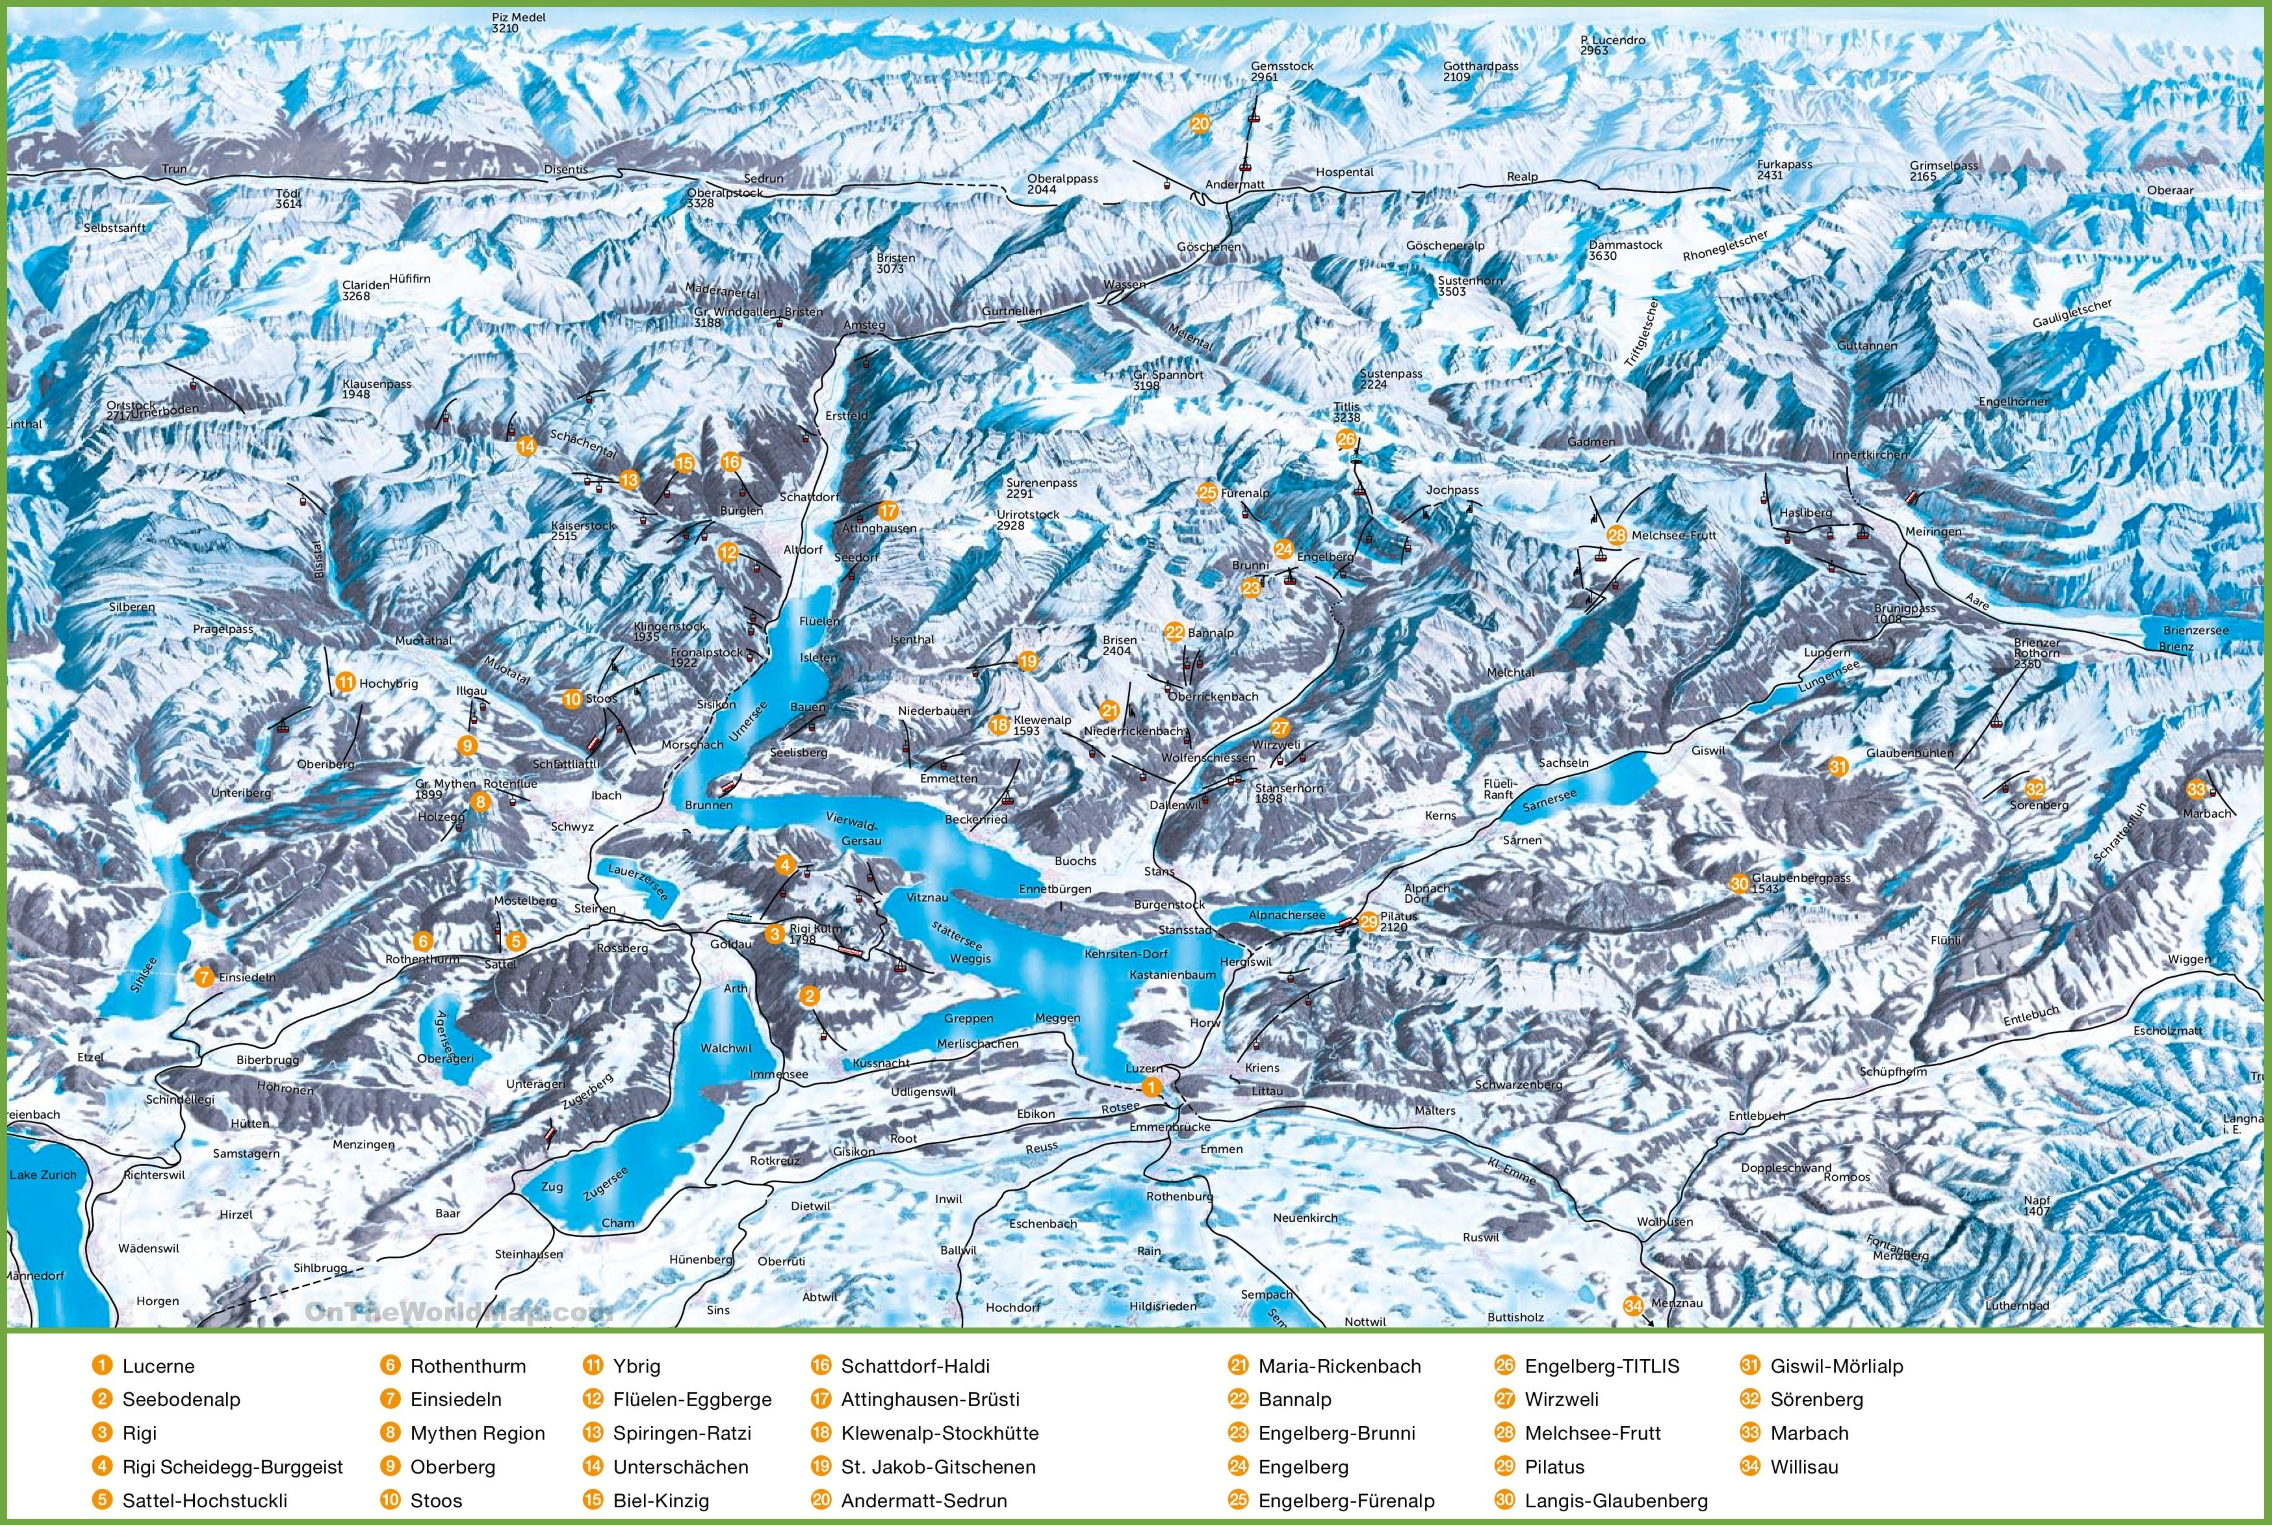 Lucerne ski resorts map